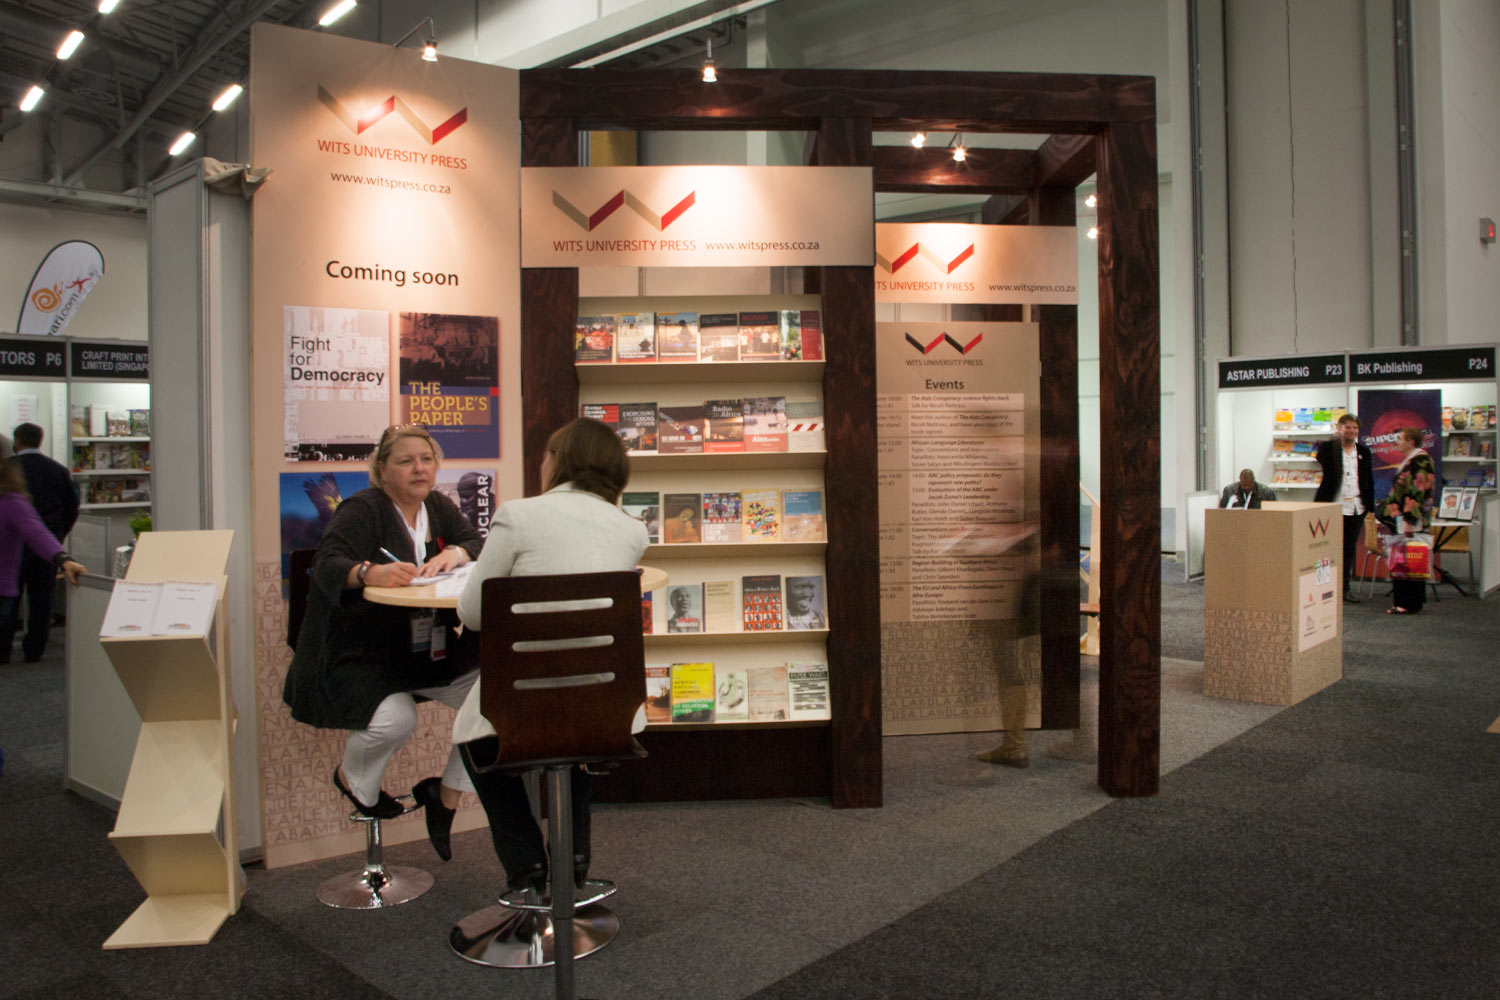 Exhibition Stand Design Books : Wits university press exhibition stand u farm design